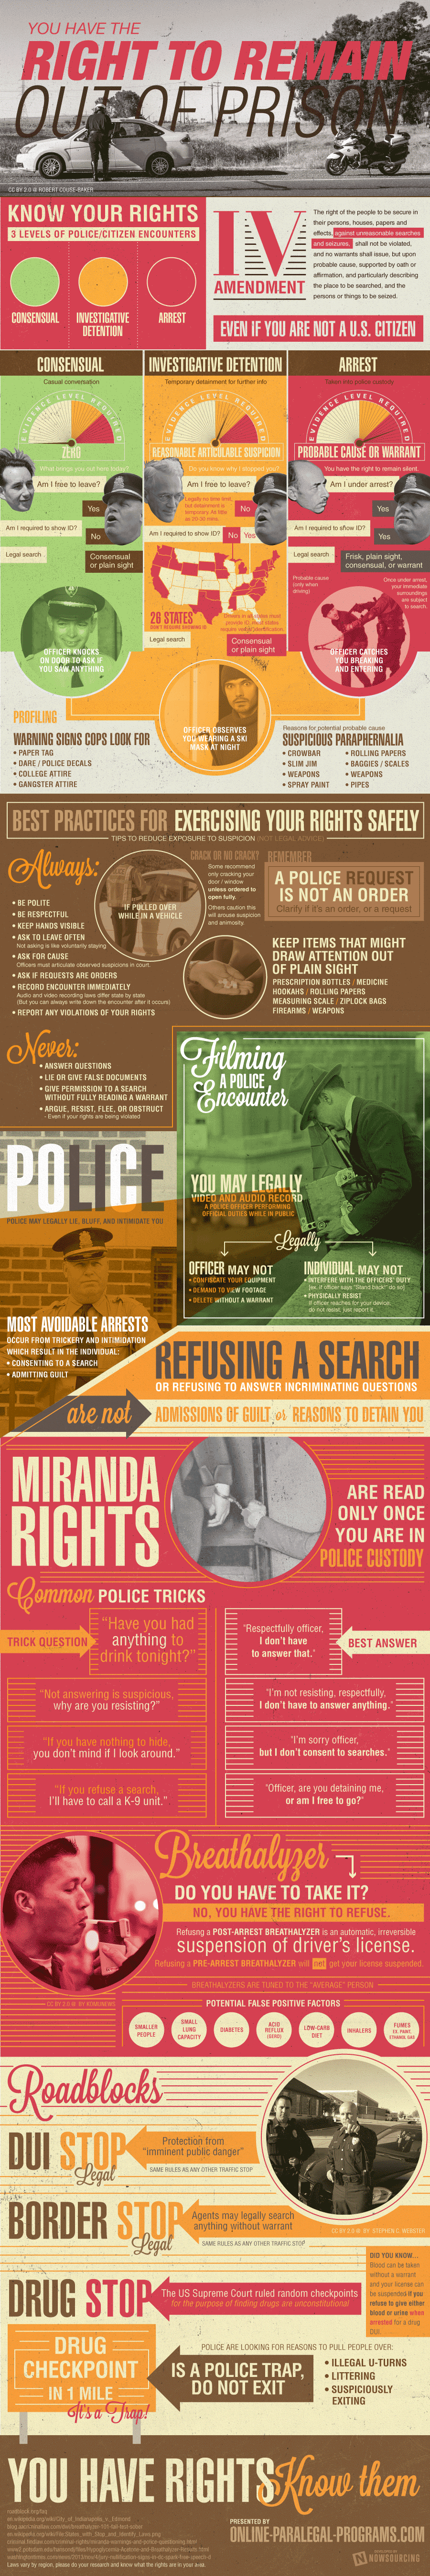 Your Rights When The Cops Pull You Over Explained In One Brilliant Infographic